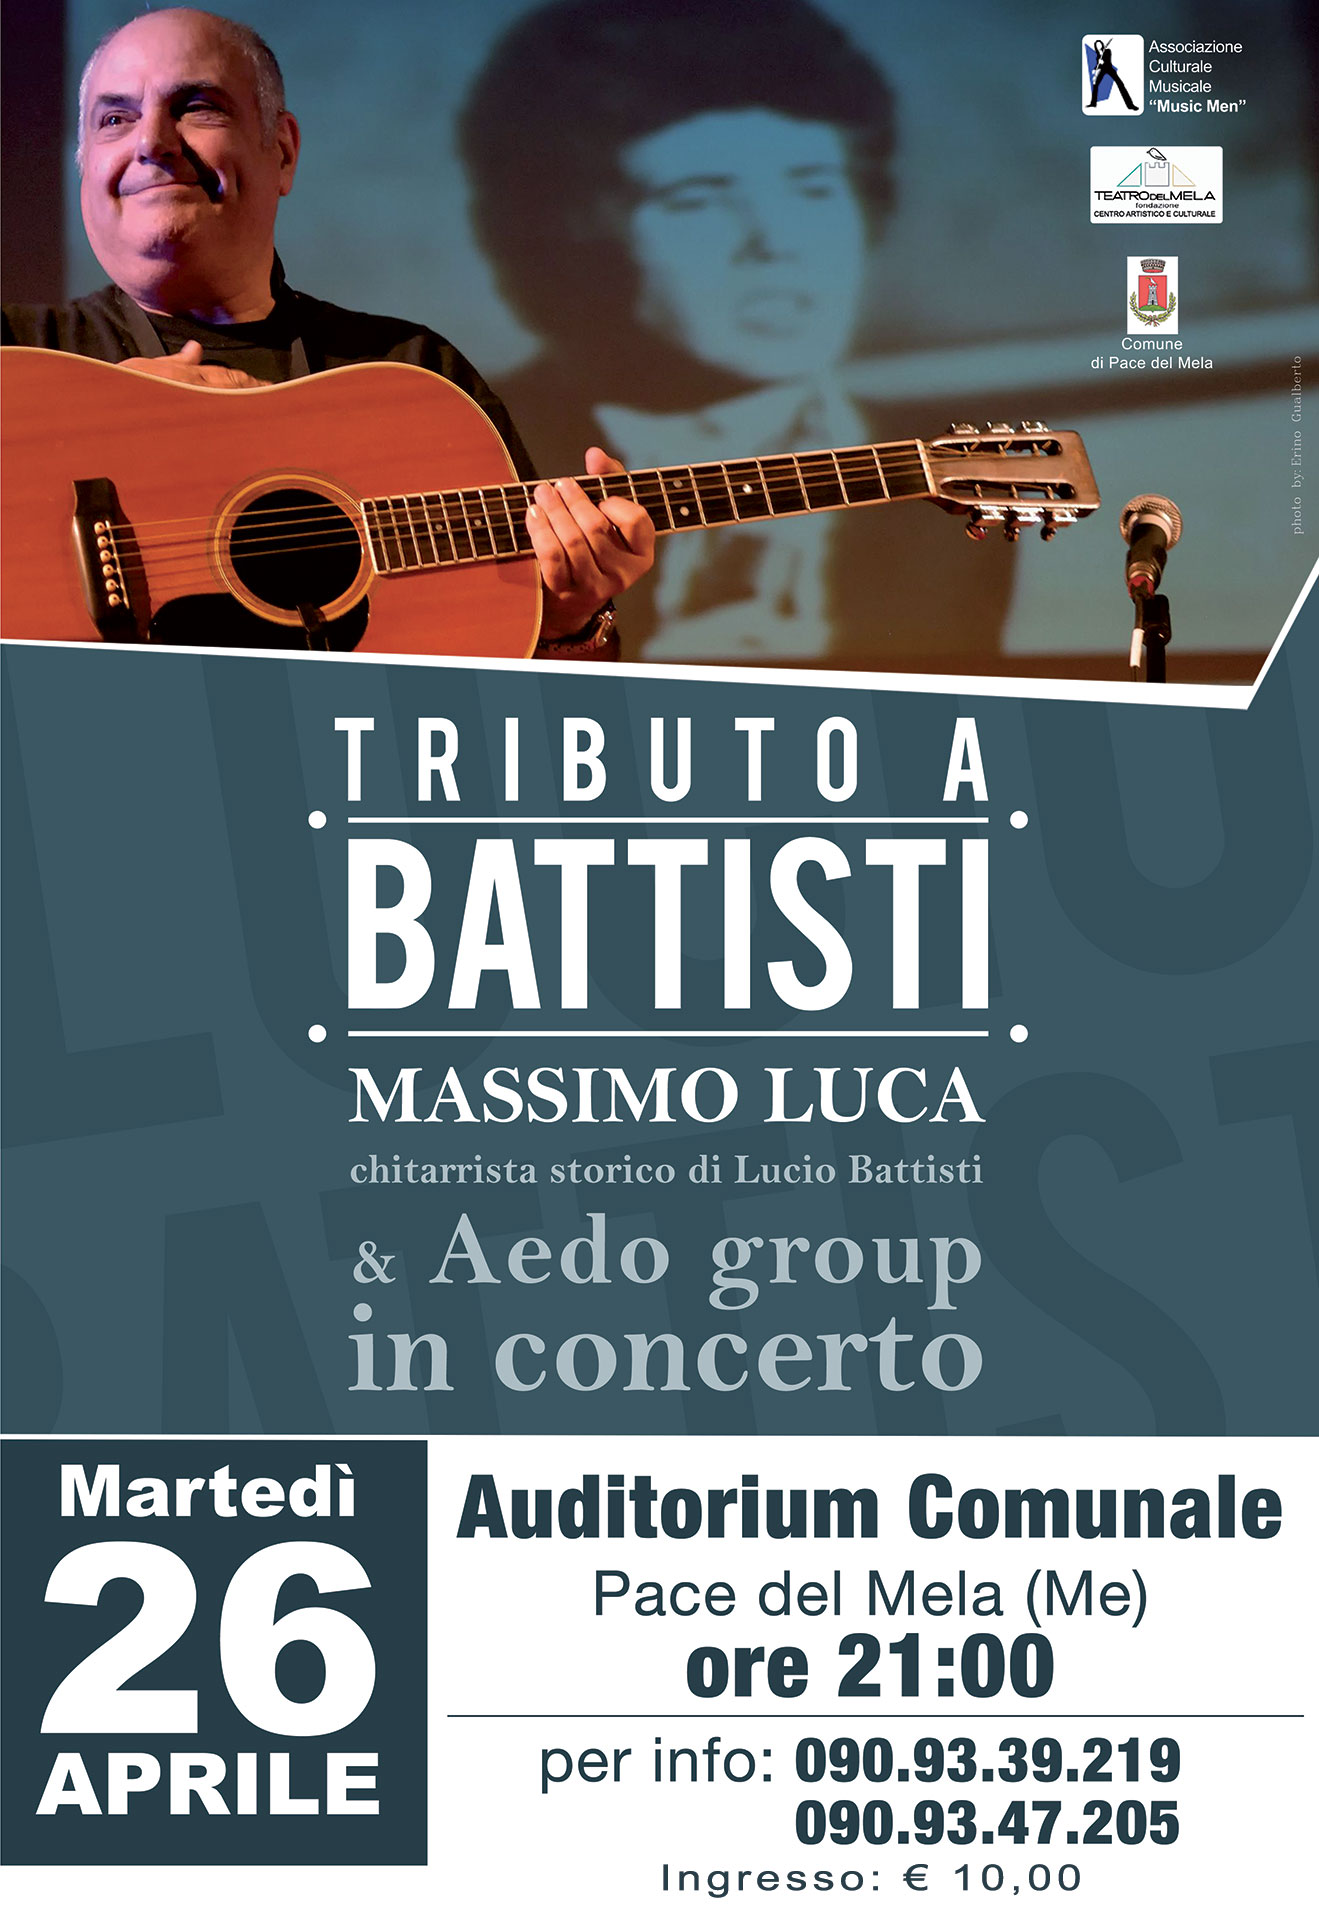 Tributo a Battisti